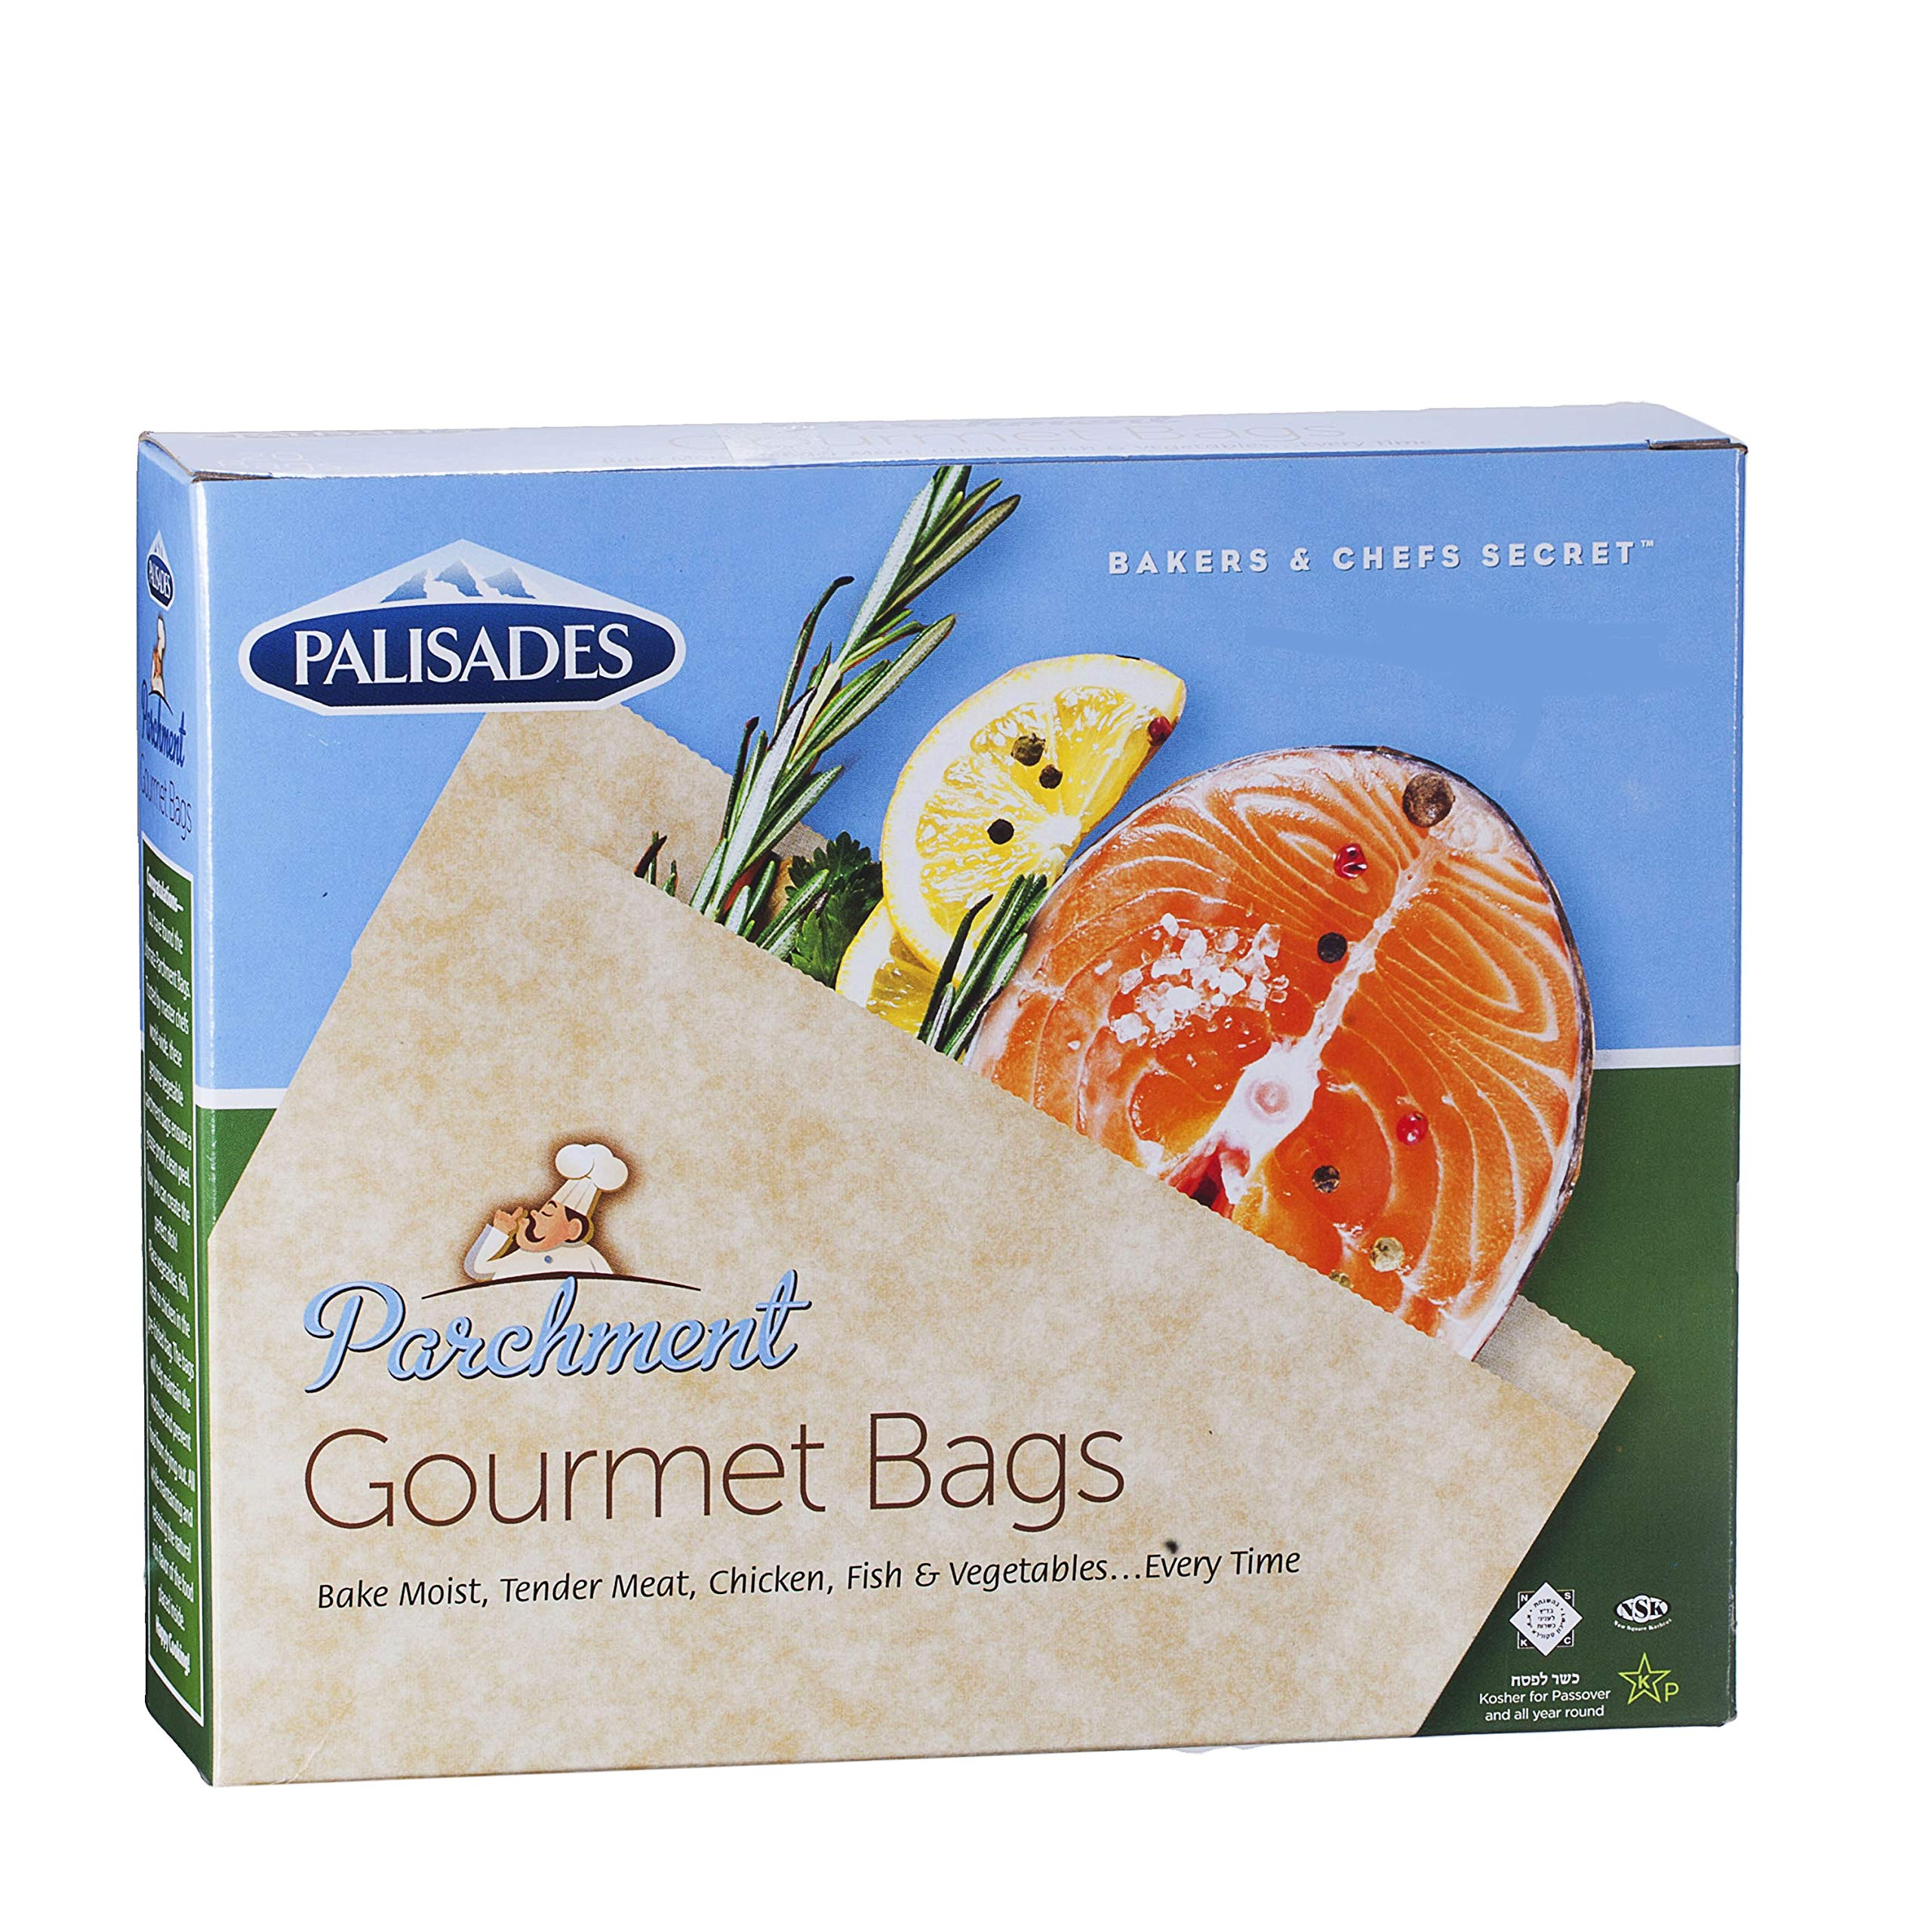 Best Quality Parchment Bags for cooking/Parchment Gourmet Cooking Bag, 12 Bags Per Pack by Palisades